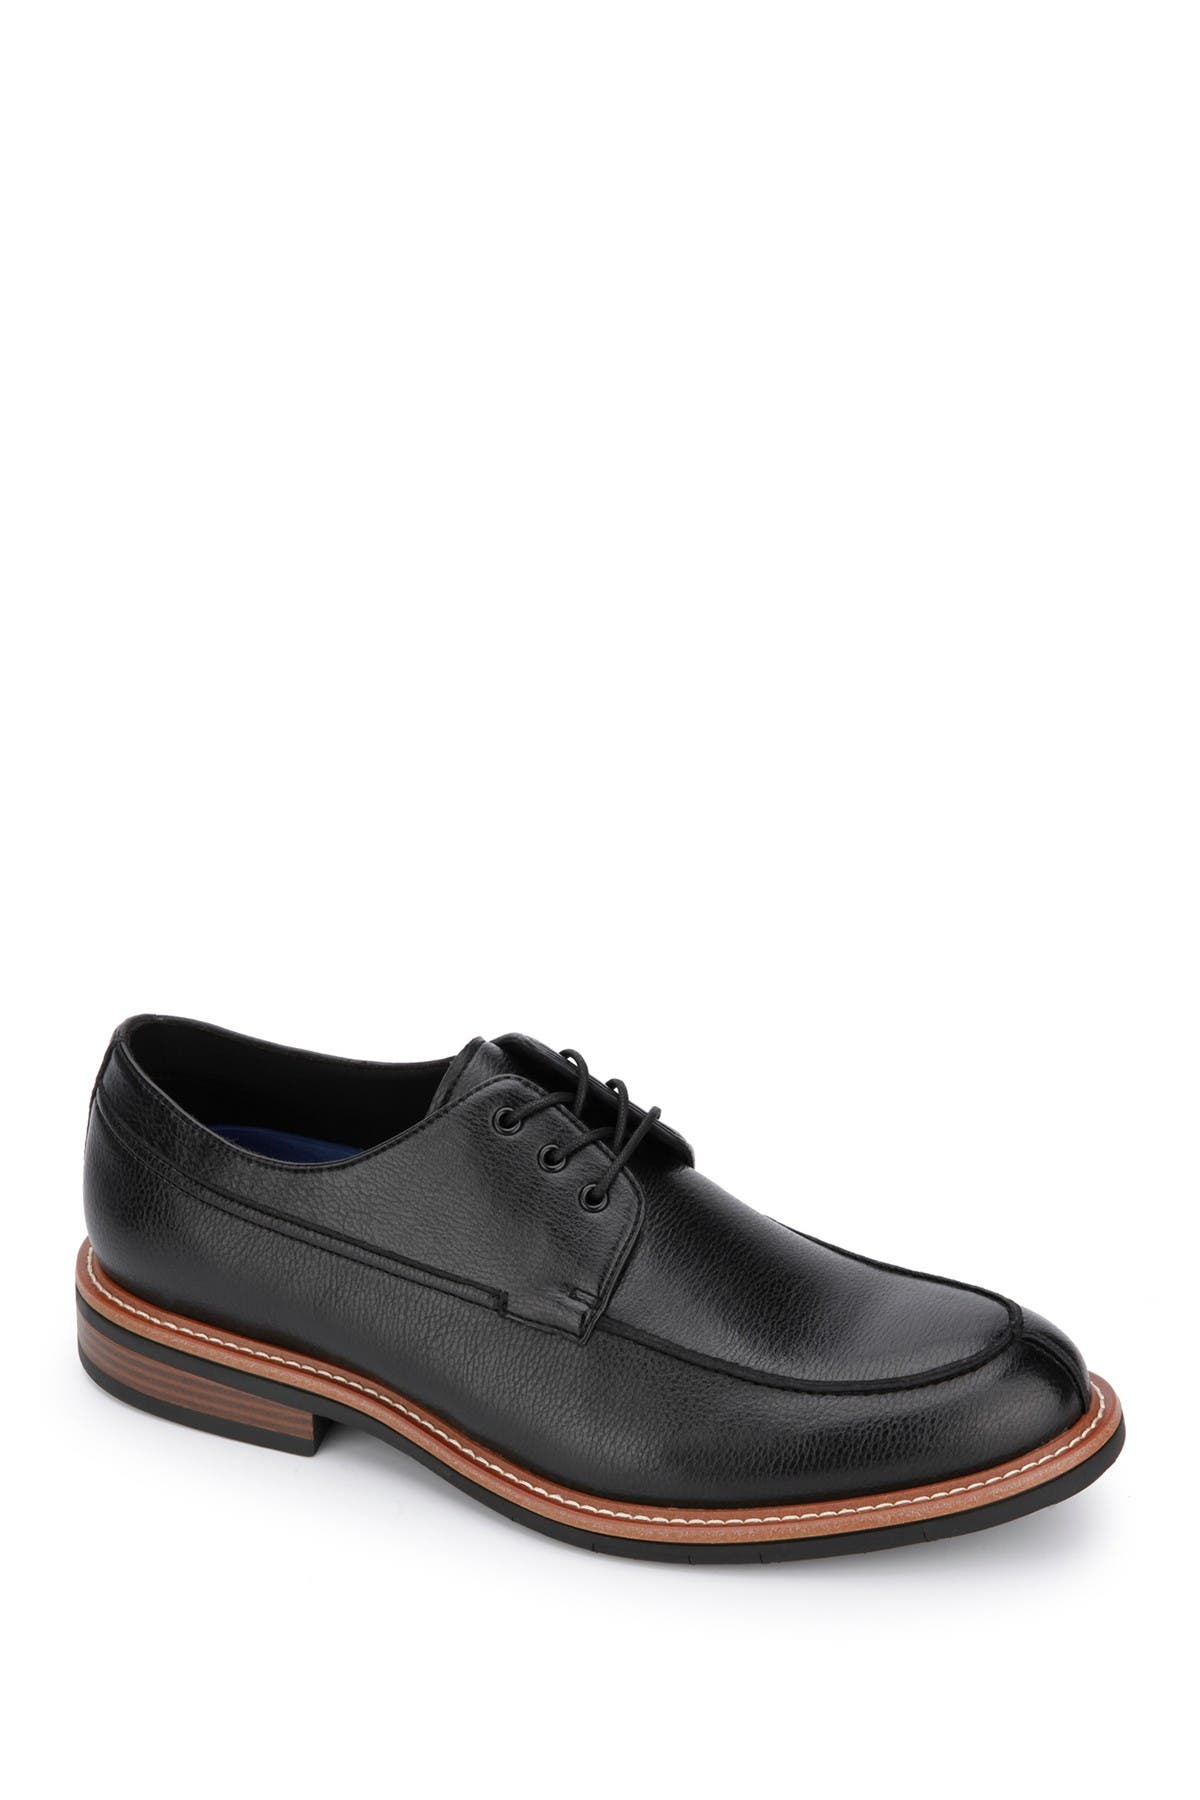 Image of KENNETH COLE Klay Flex Derby